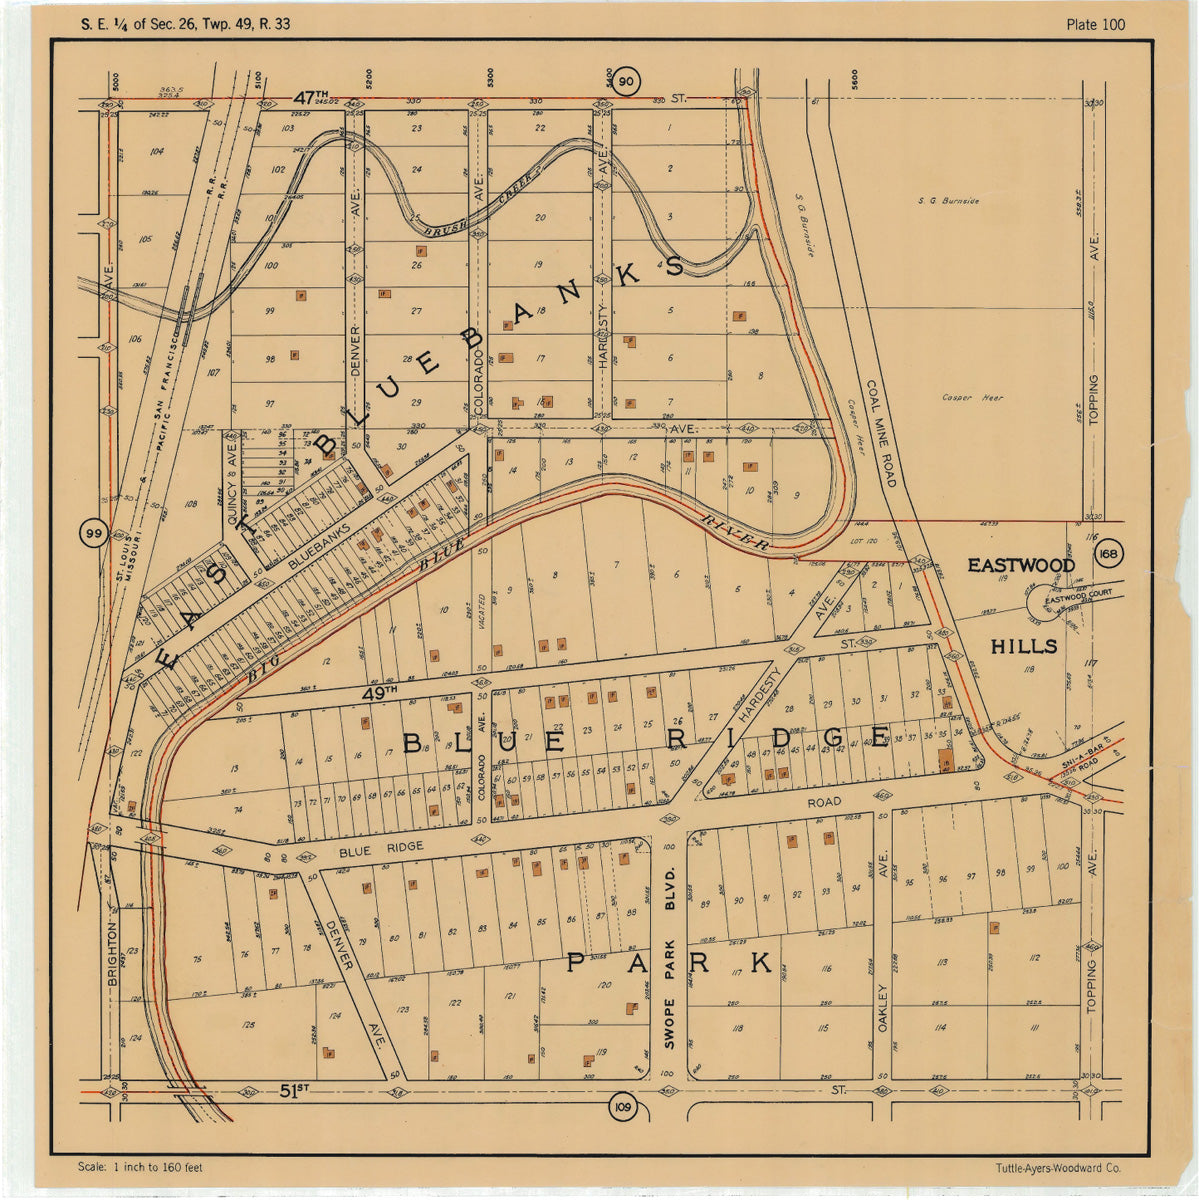 Kansas City 1925 Neighborhood Map - Plate #100 47th-51st Brighton-Topping